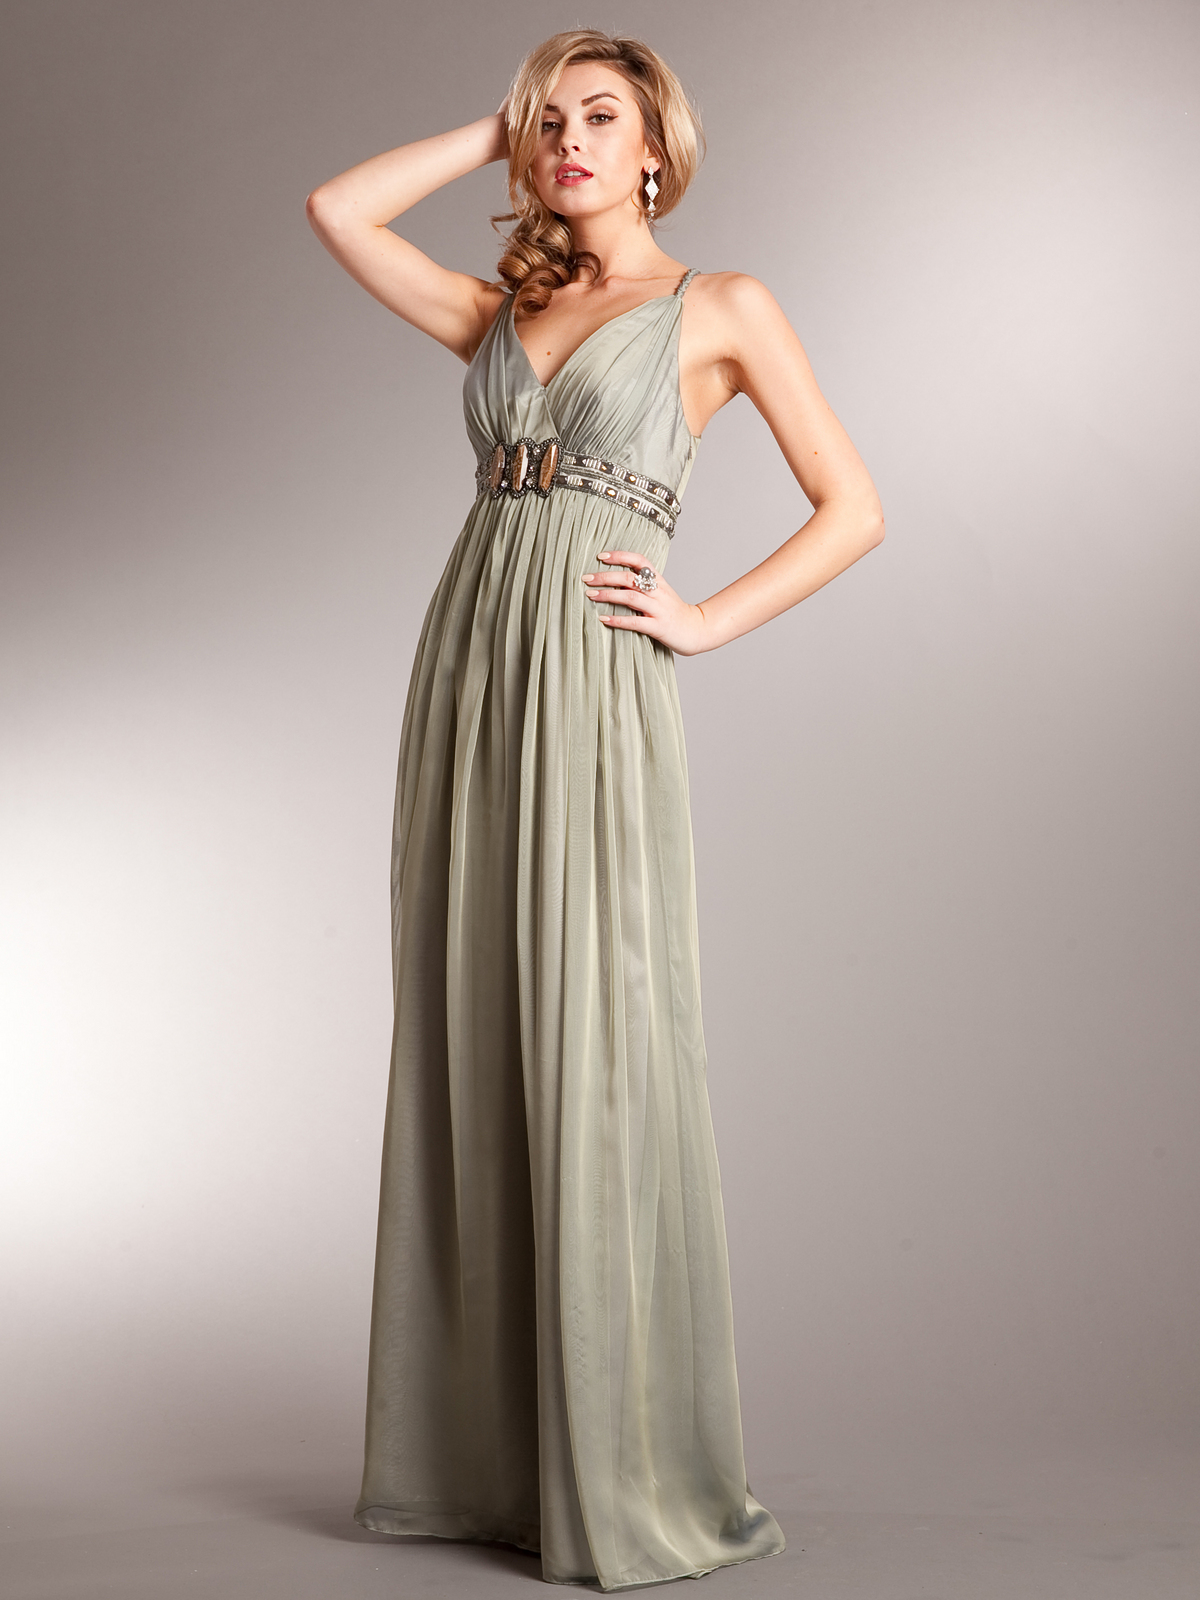 How to choose Grecian Gown